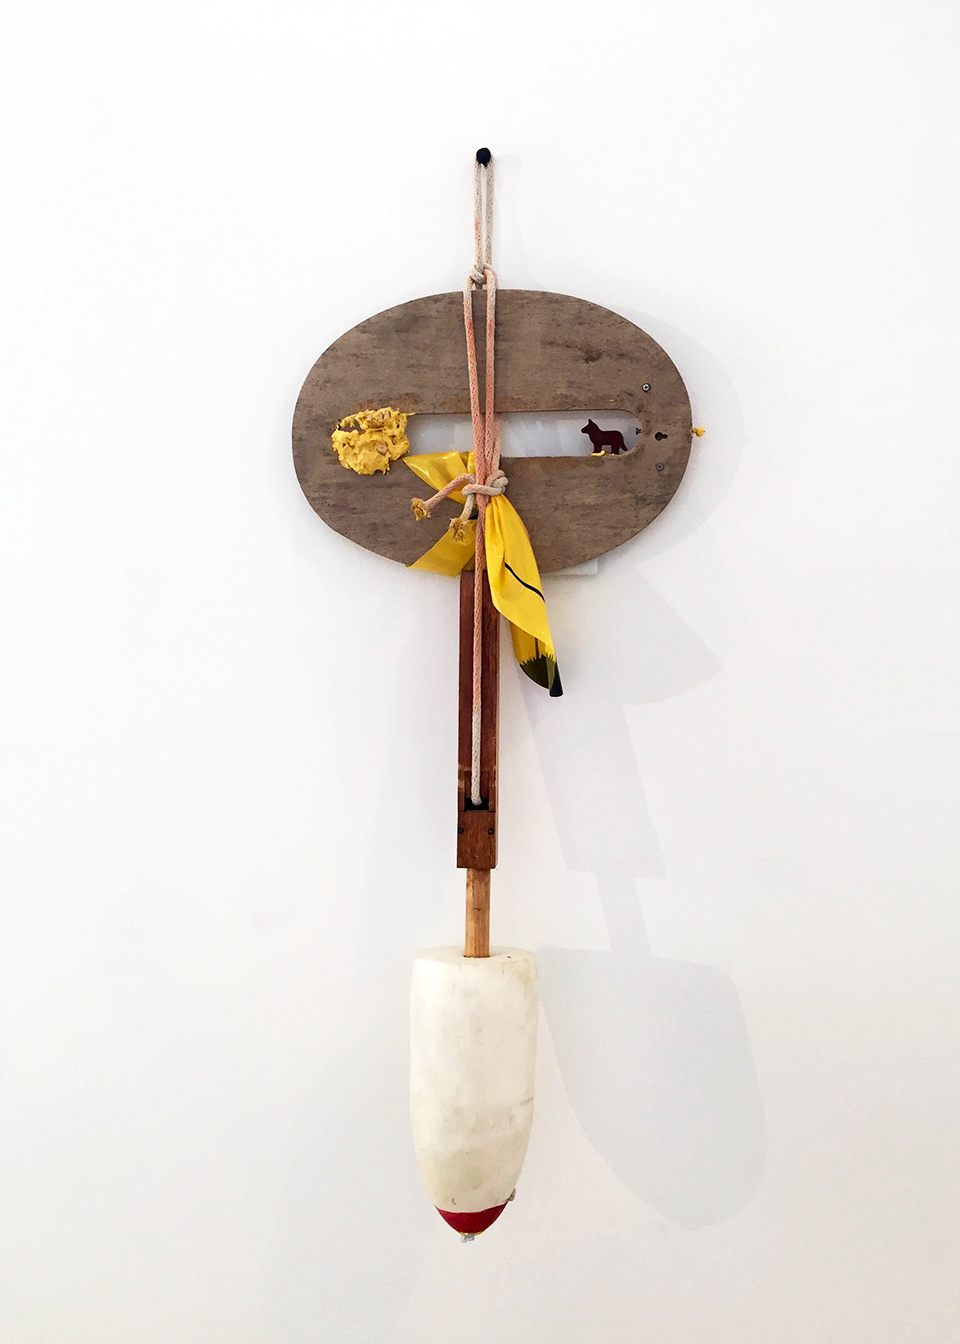 My Indiana, 2016 Wood, buoy, rope, acrylic teeth, glue mixture 30 x 17 x 12 inches